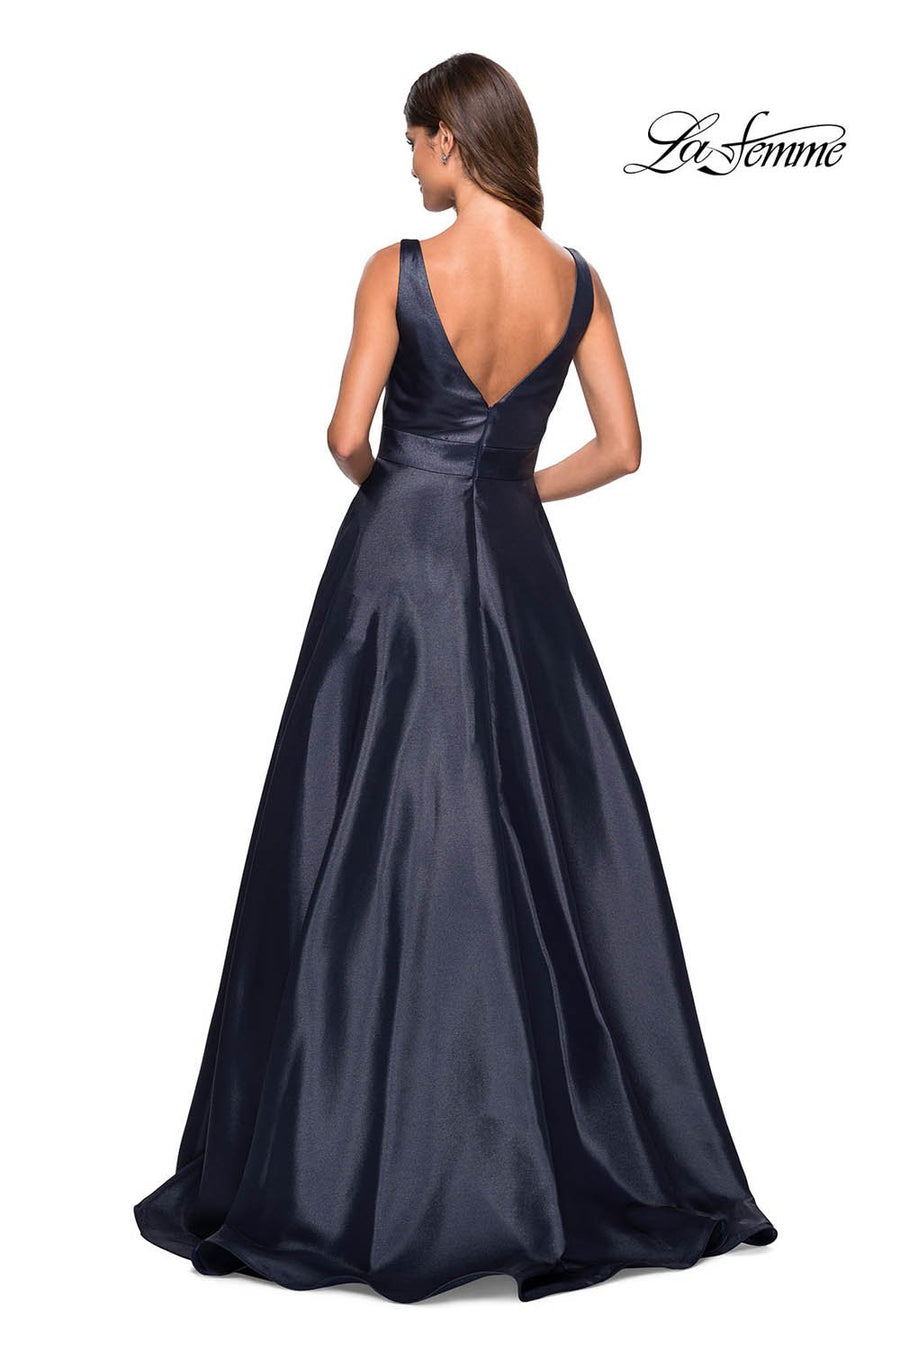 Gigi by La Femme 27202 prom dress images.  Gigi by La Femme 27202 is available in these colors: Burgundy, Navy, Platinum.